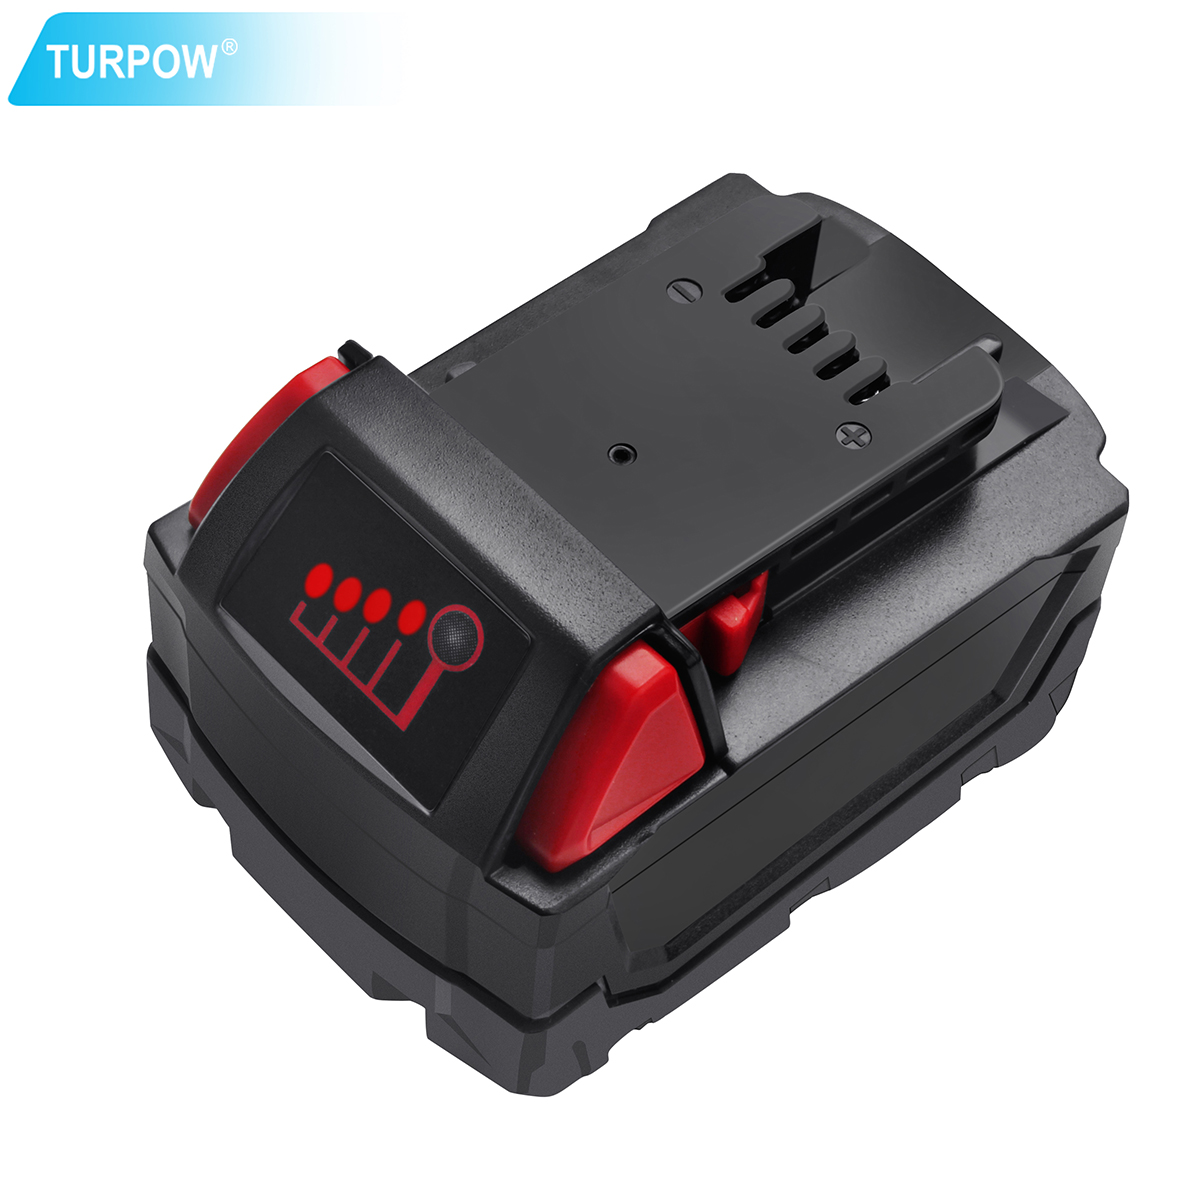 Turpow Rechargeable Li-ion <font><b>Battery</b></font> For <font><b>Milwaukee</b></font> <font><b>M18</b></font> 6000mAh Power Tools Replacement 48-11-1815 48-11-1850 48-11-1840 10L image